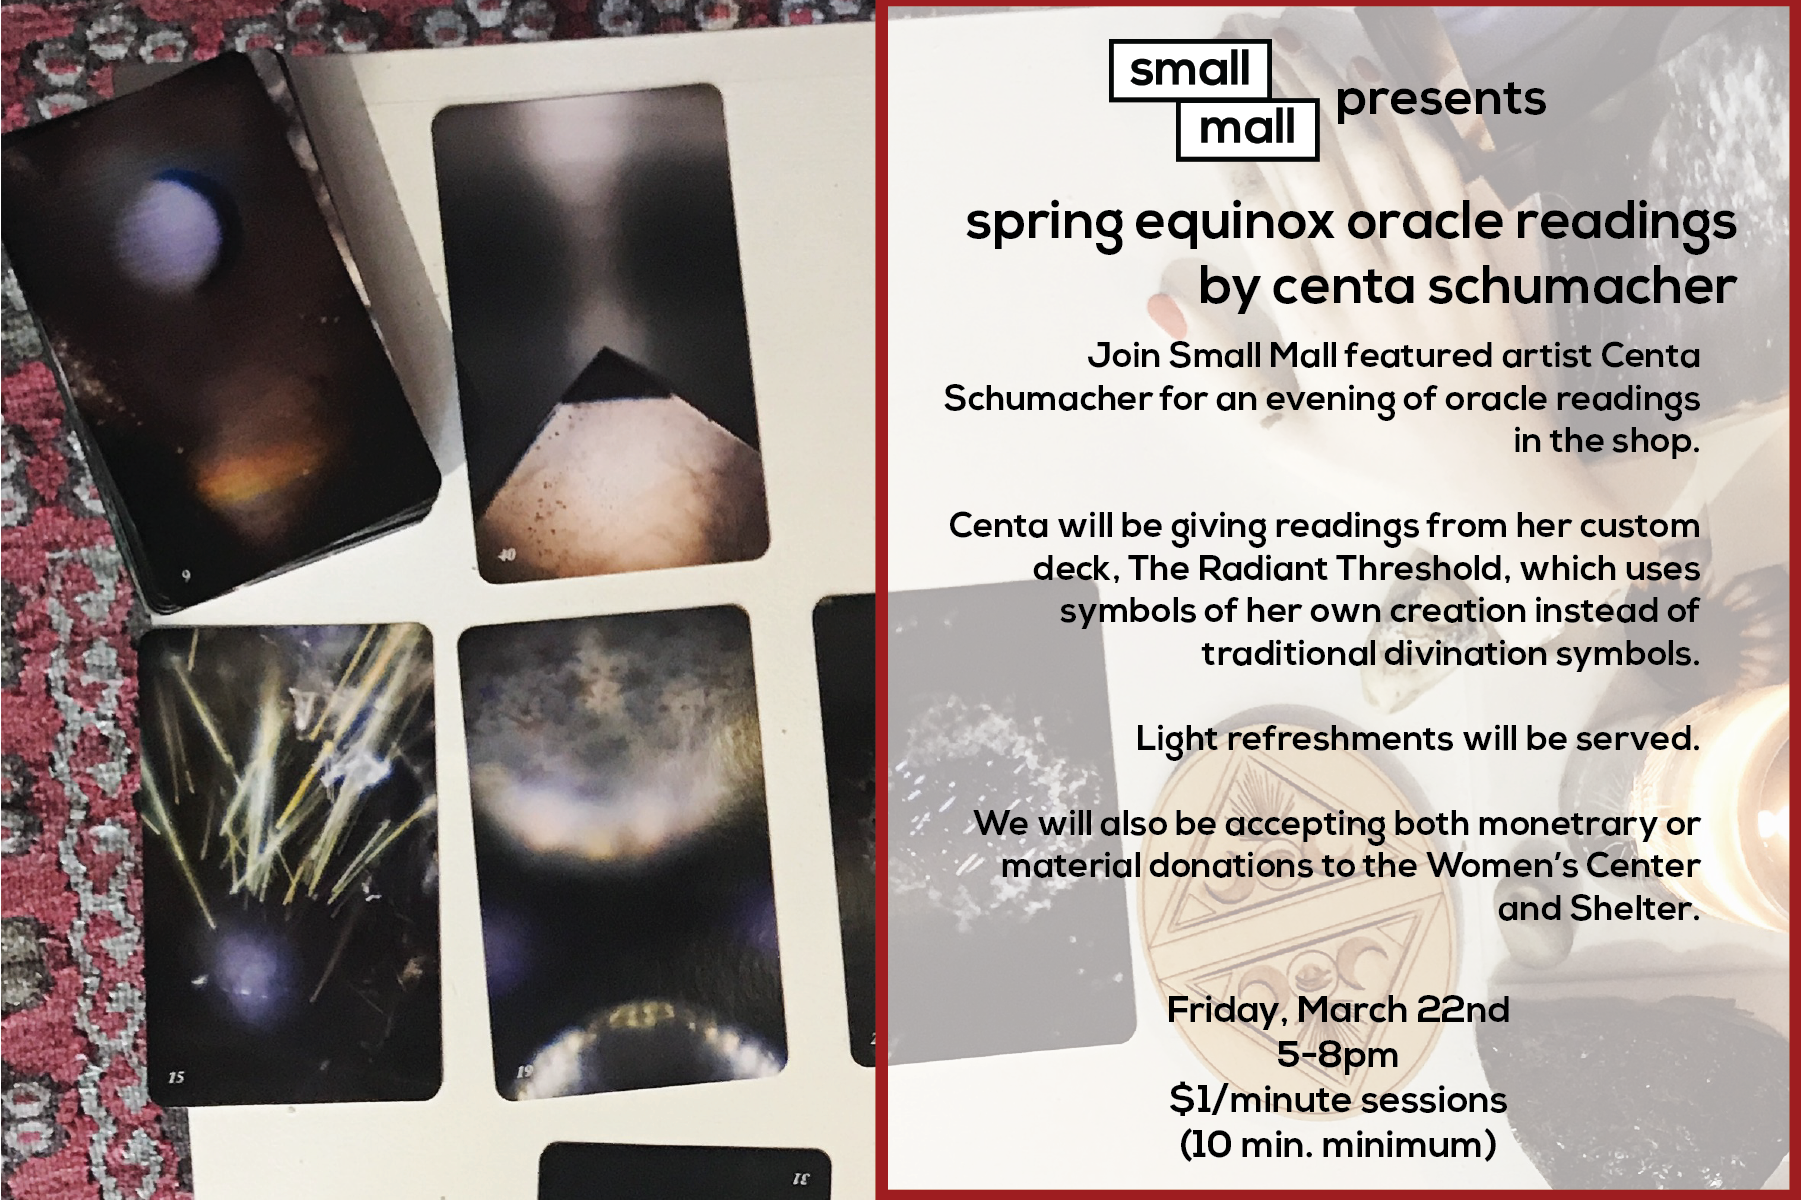 Centa Schumacher will be at Small Mall, giving readings for the spring equinox